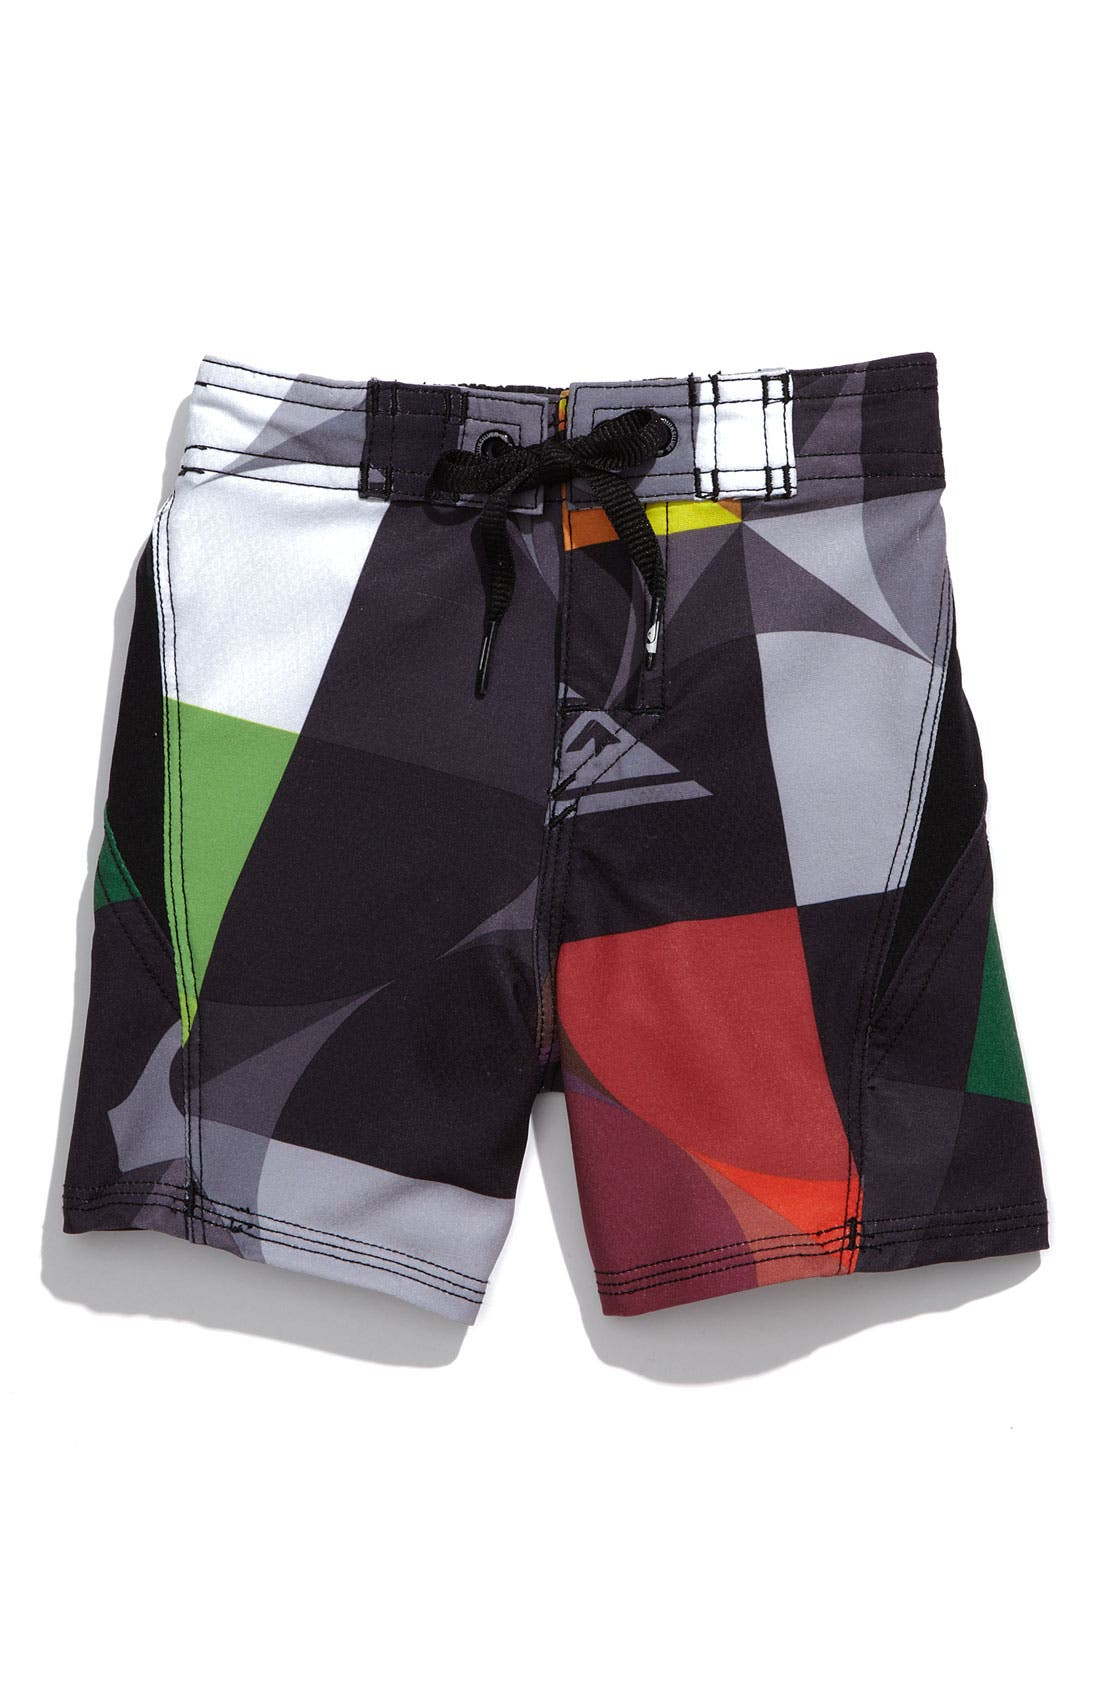 Main Image - Quiksilver 'Cypher Buzzed' Board Shorts (Infant)